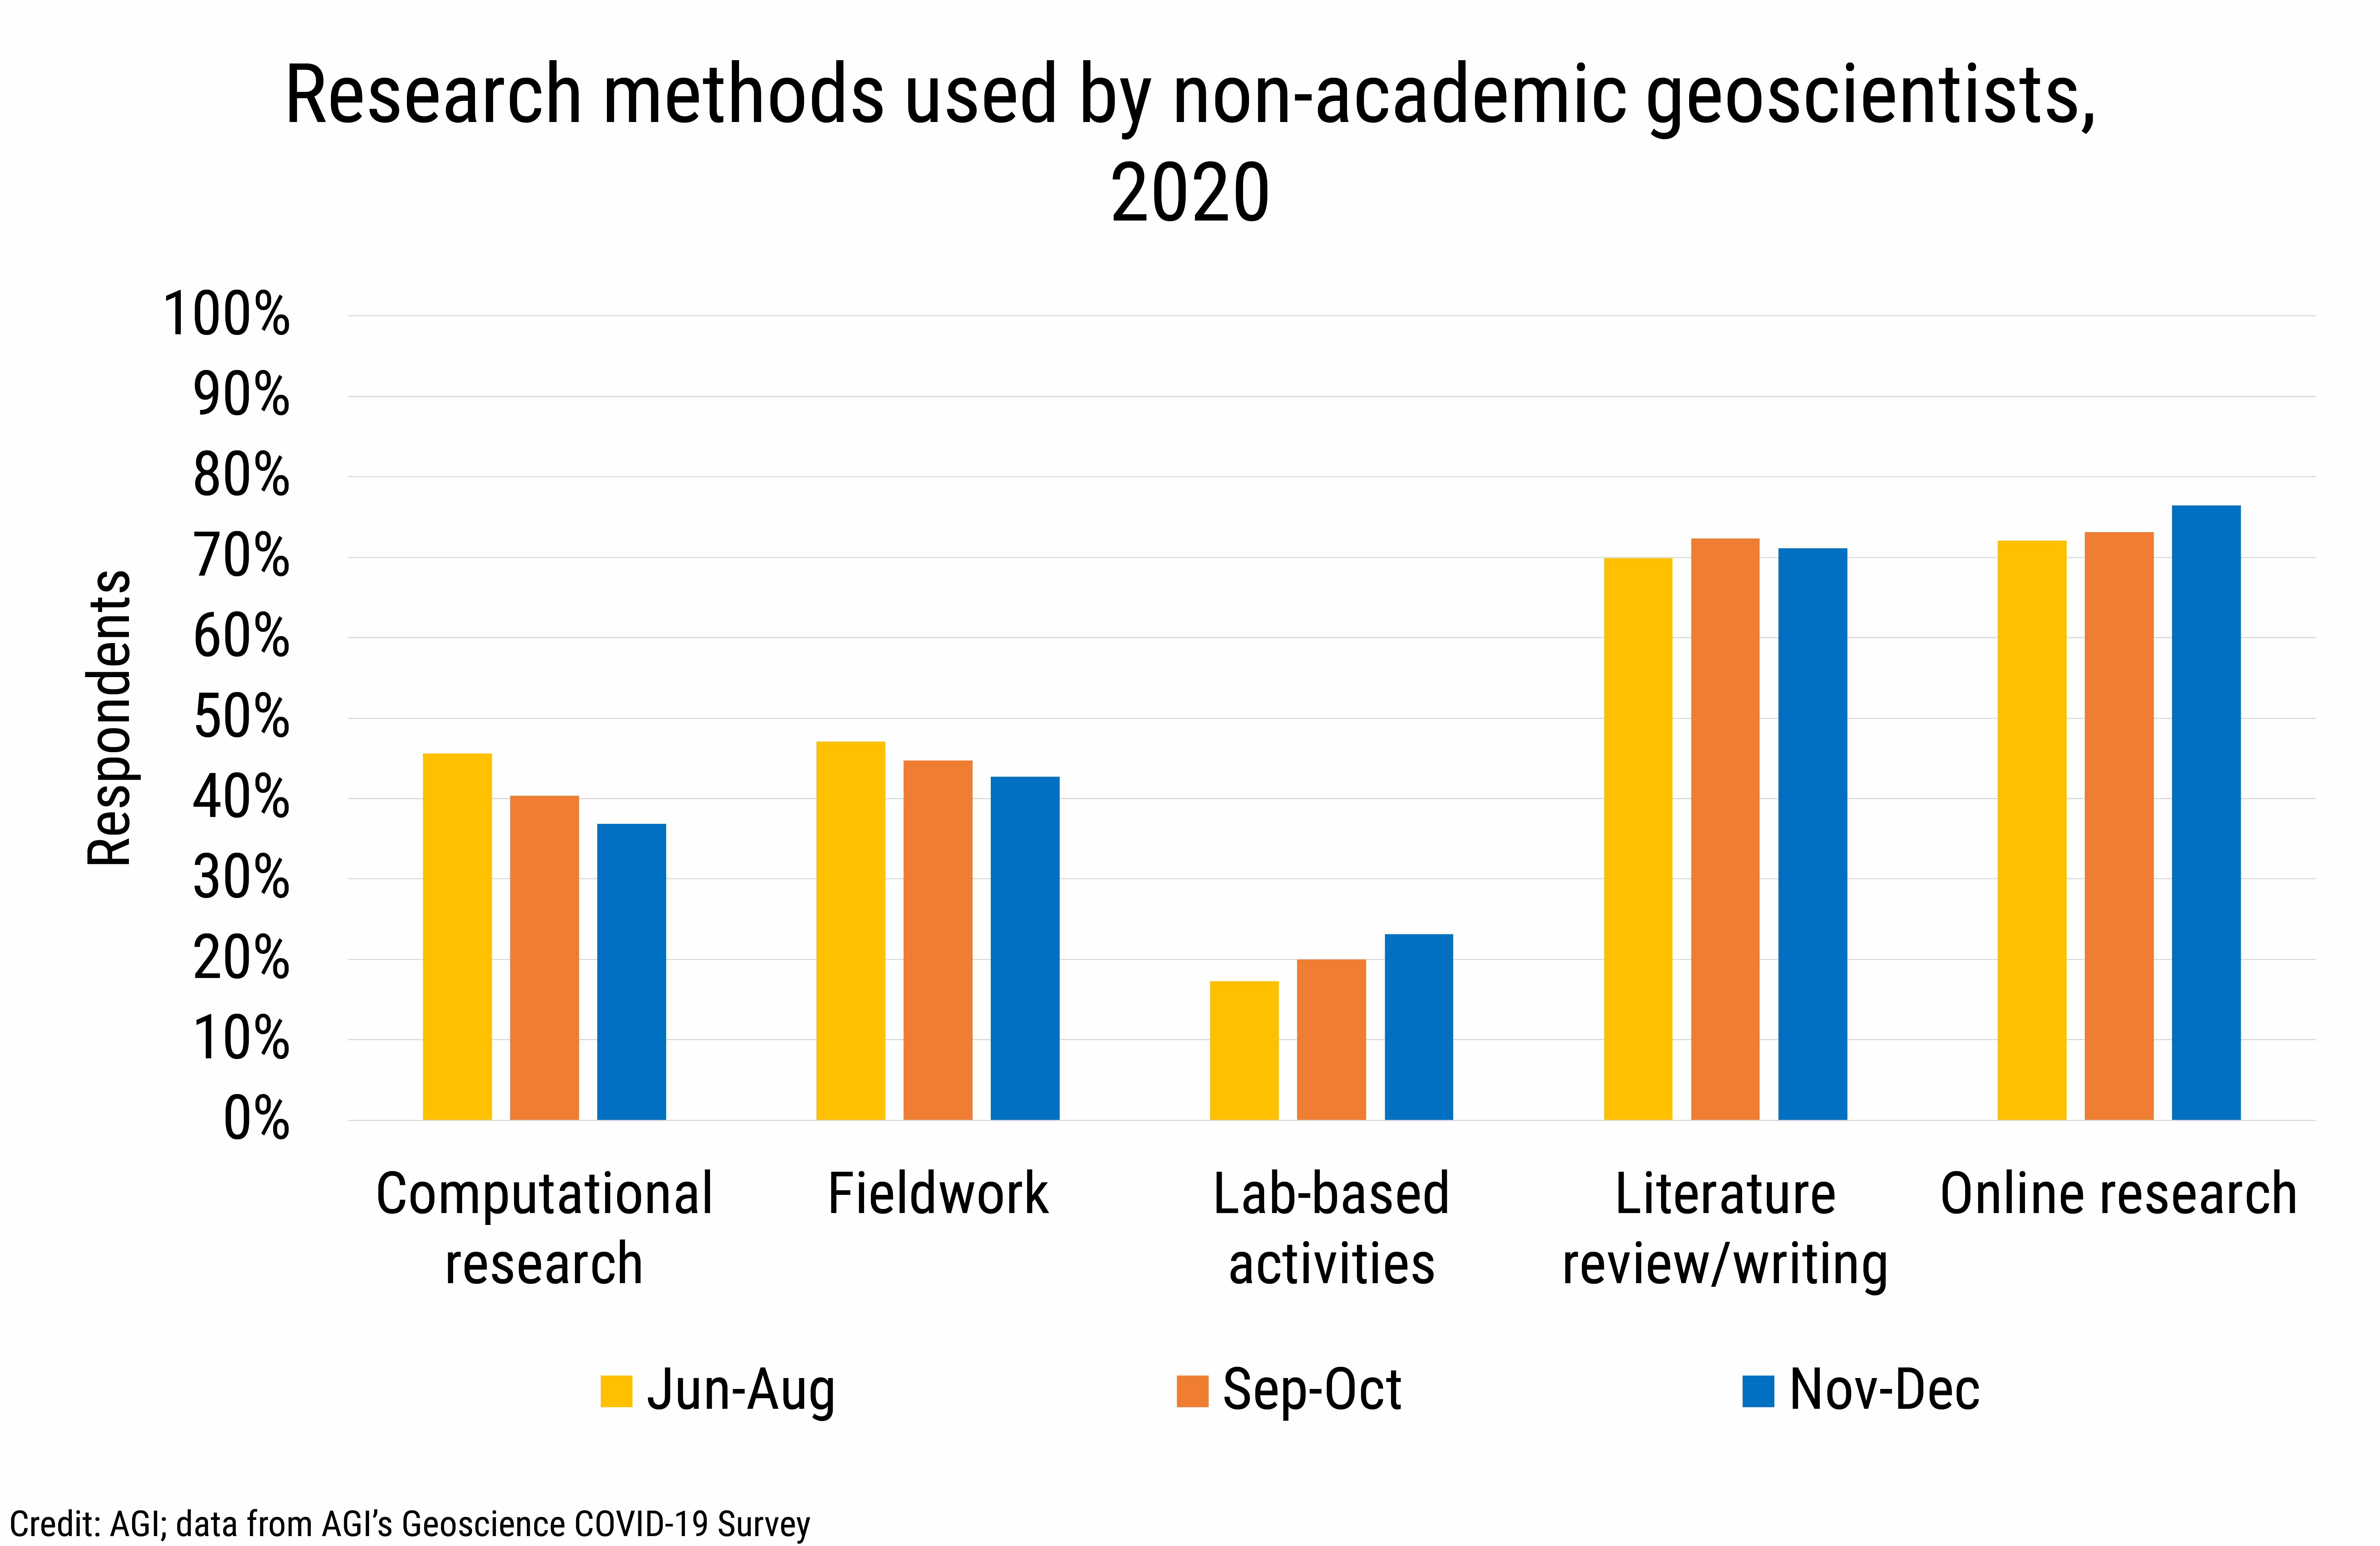 DB_2021-002 chart 04: Research methods used by non-academic geoscientistse, 2020 (Credit: AGI; data from AGI's Geoscience COVID-19 Survey)